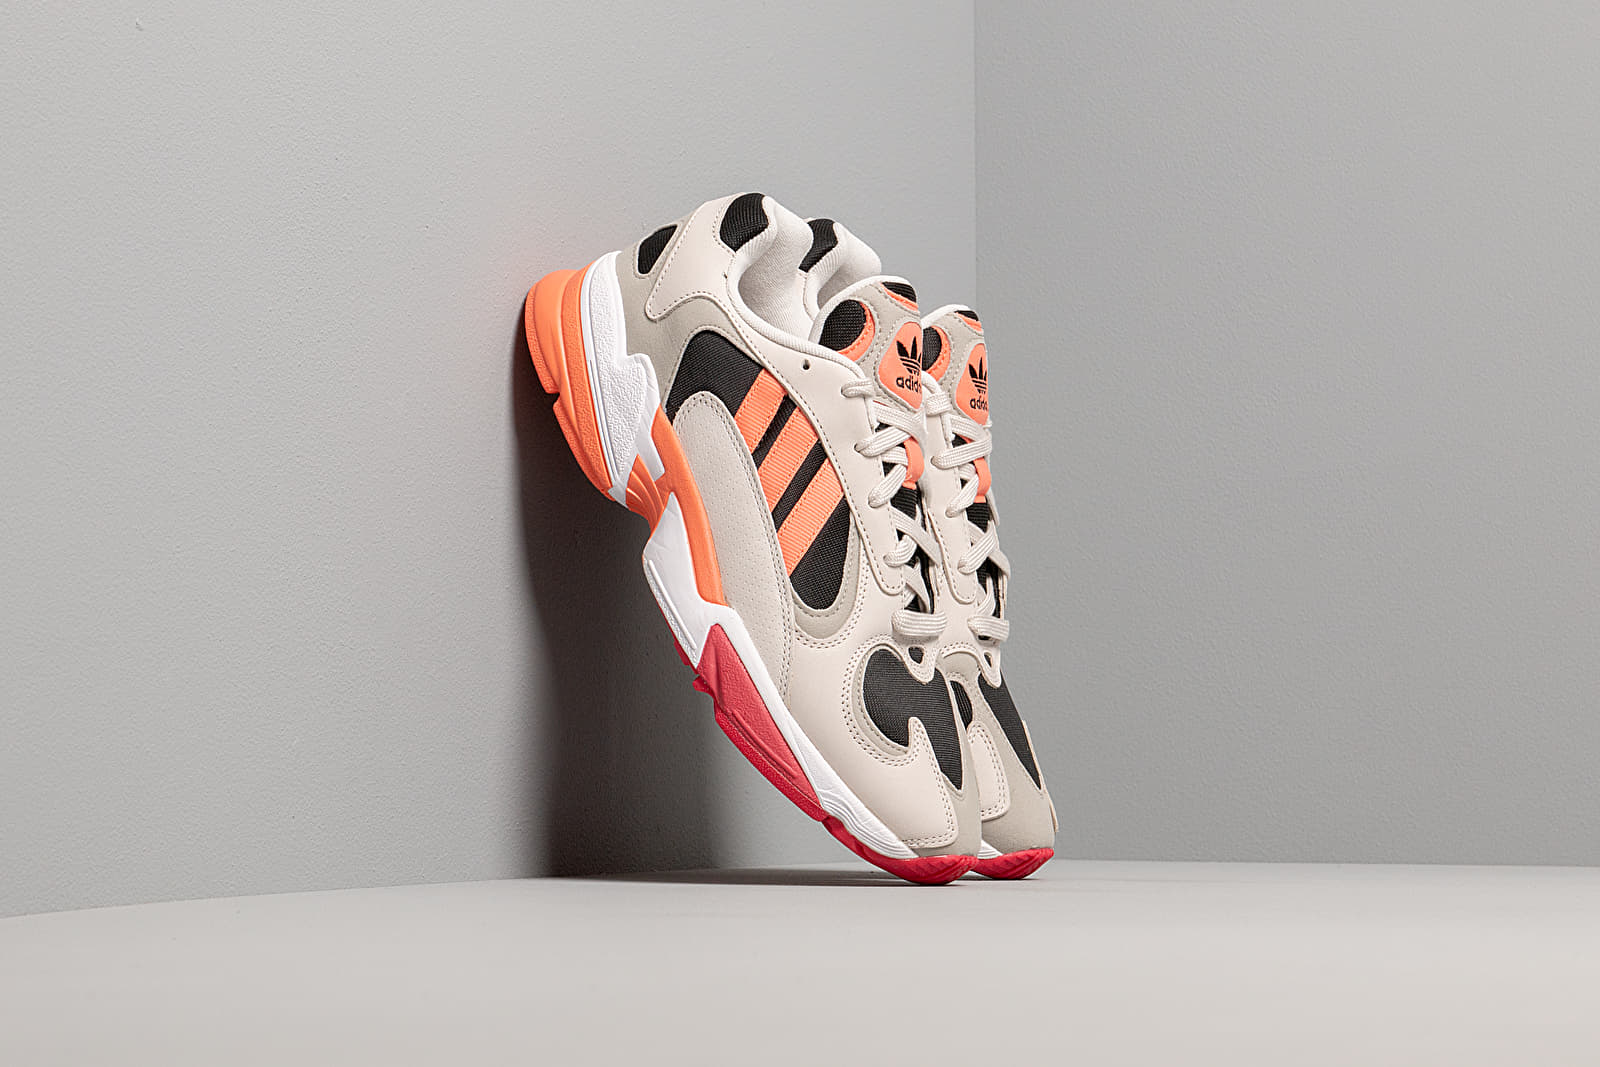 Moški čevlji adidas Yung 1 Core Black/ Semi Core Orange/ Raw White